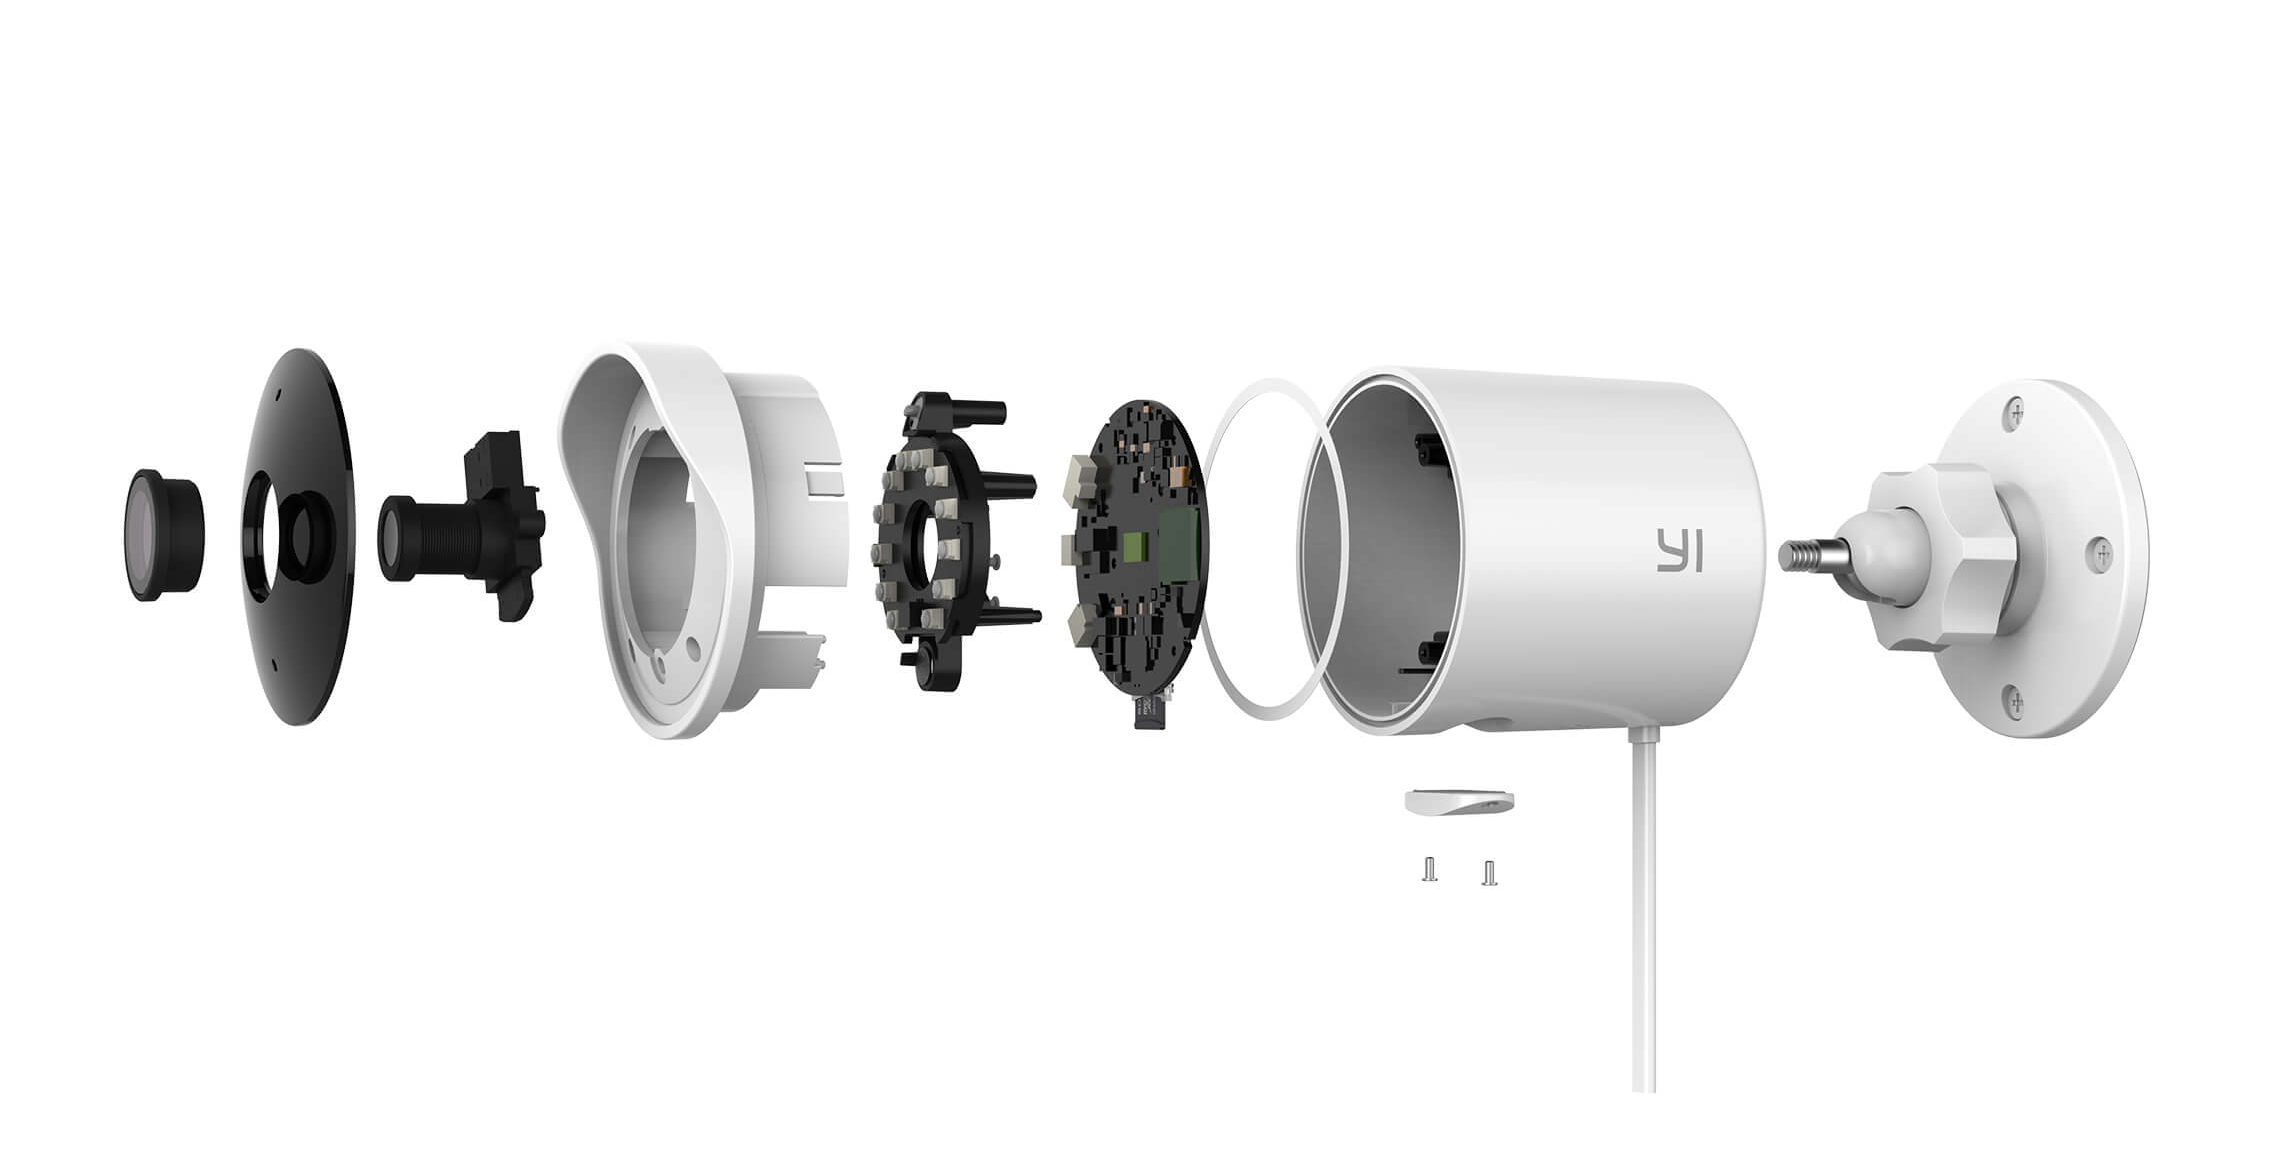 Yi announces a 1080p outdoor security camera for $99 99